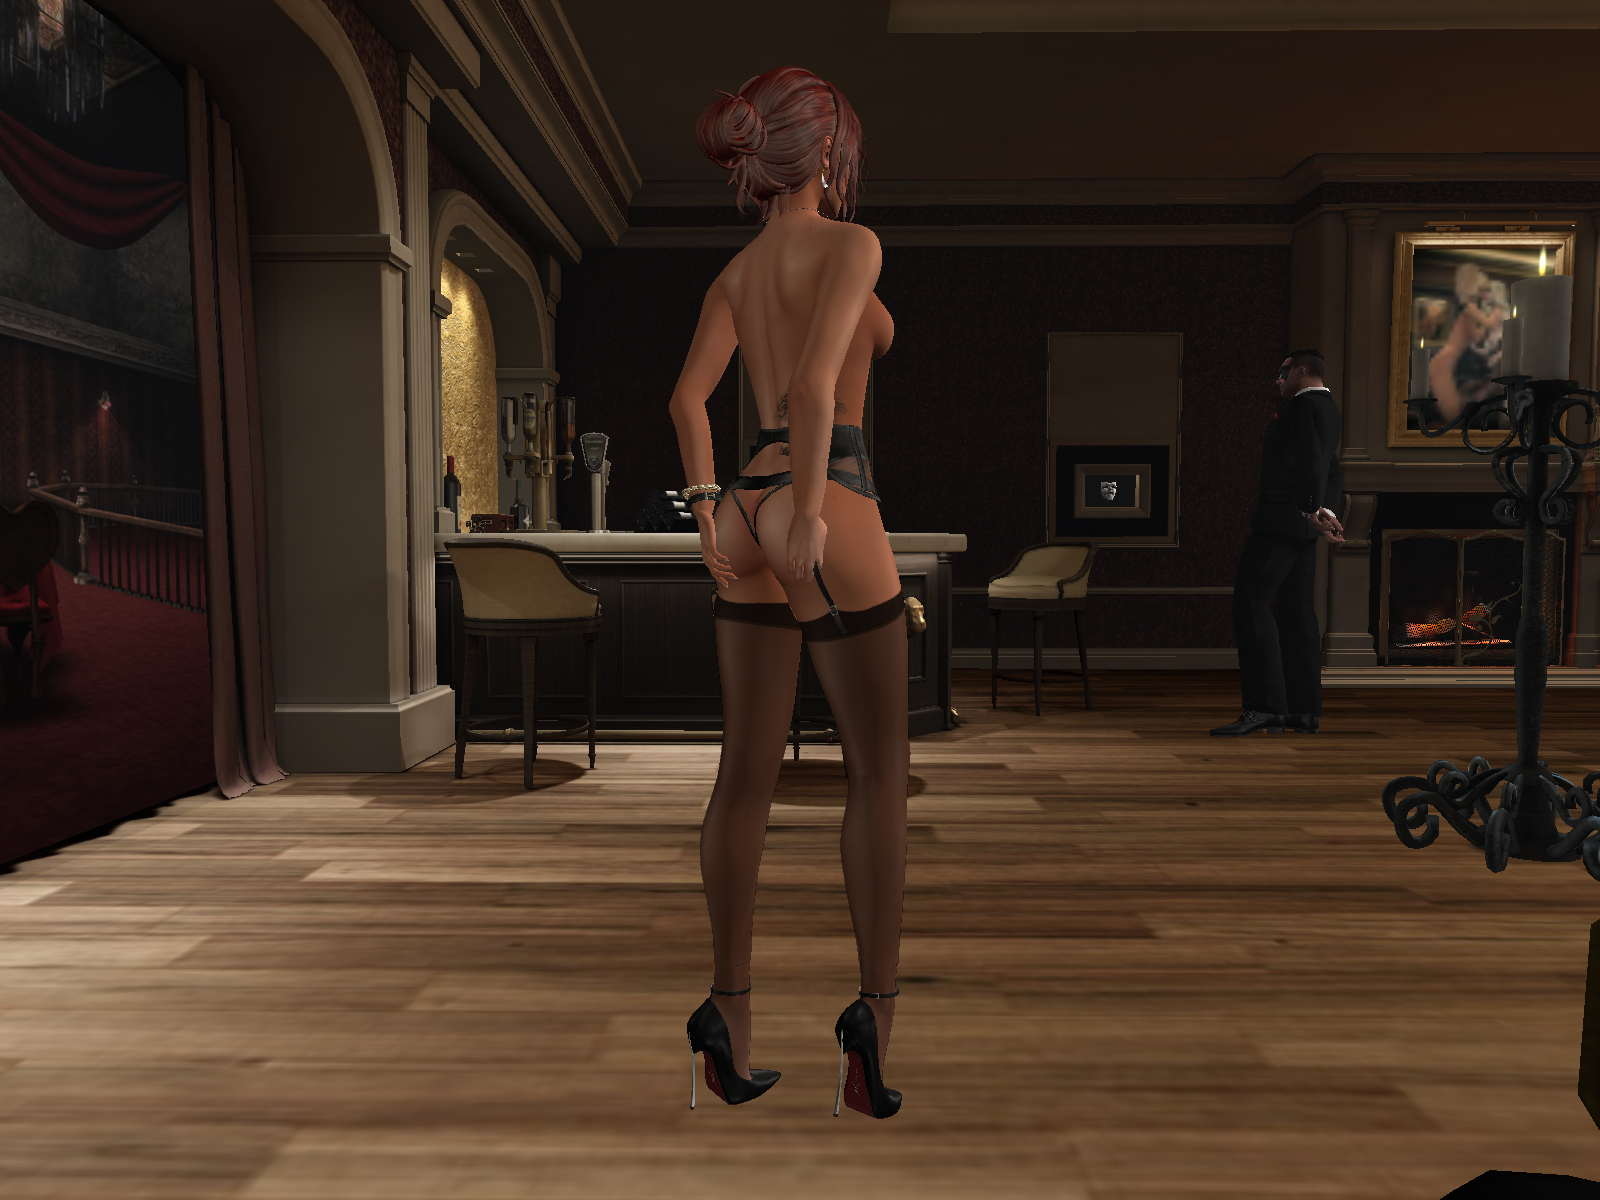 Mysterium Masked Mansion, an erotic swinger place